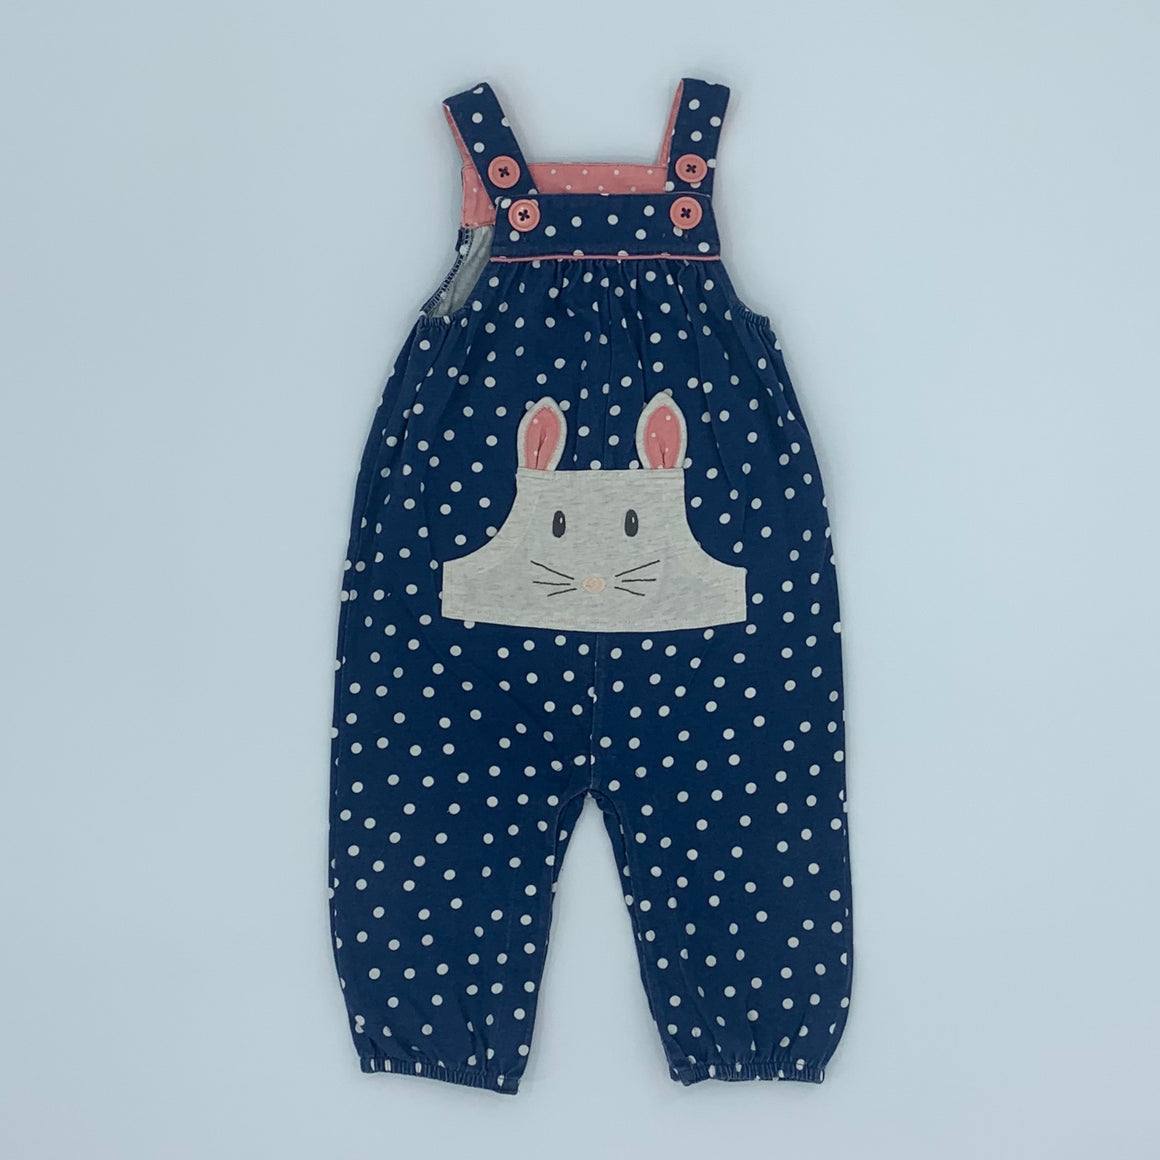 Gently Worn Boden blue mouse romper dungarees size 6-12 months